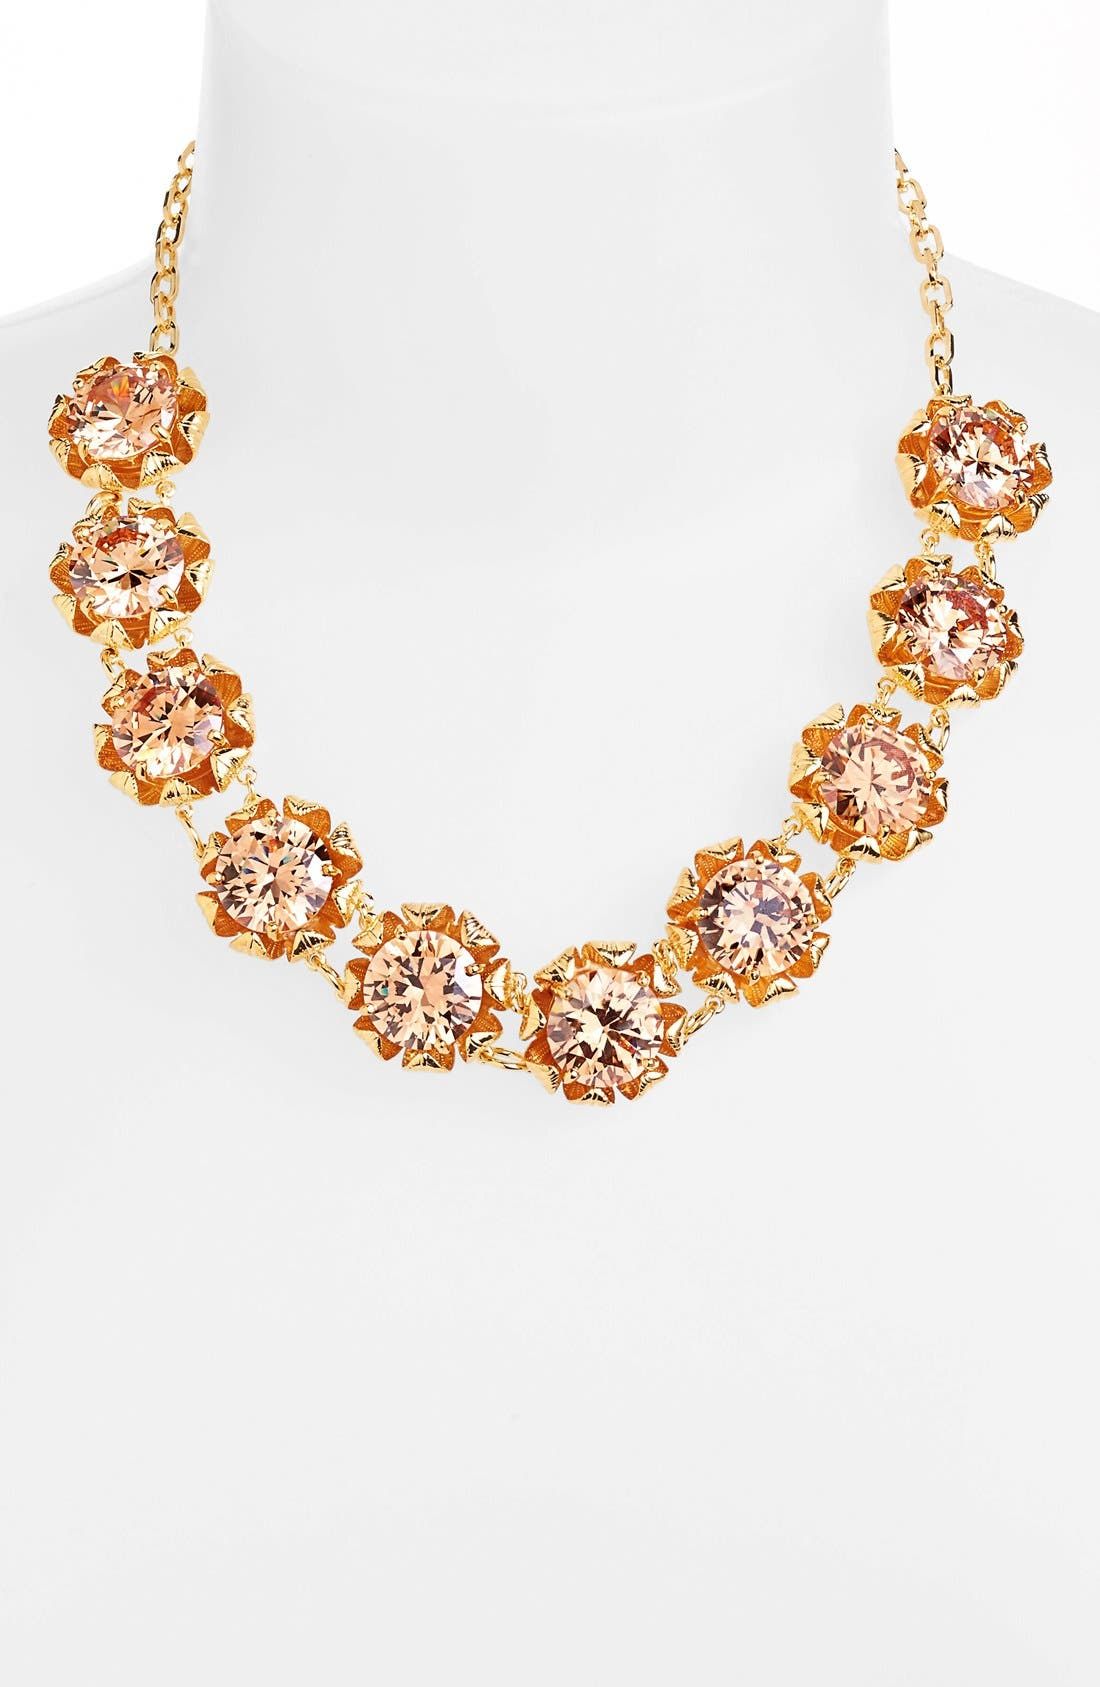 Alternate Image 1 Selected - Tory Burch 'Leah' Crystal Floral Necklace